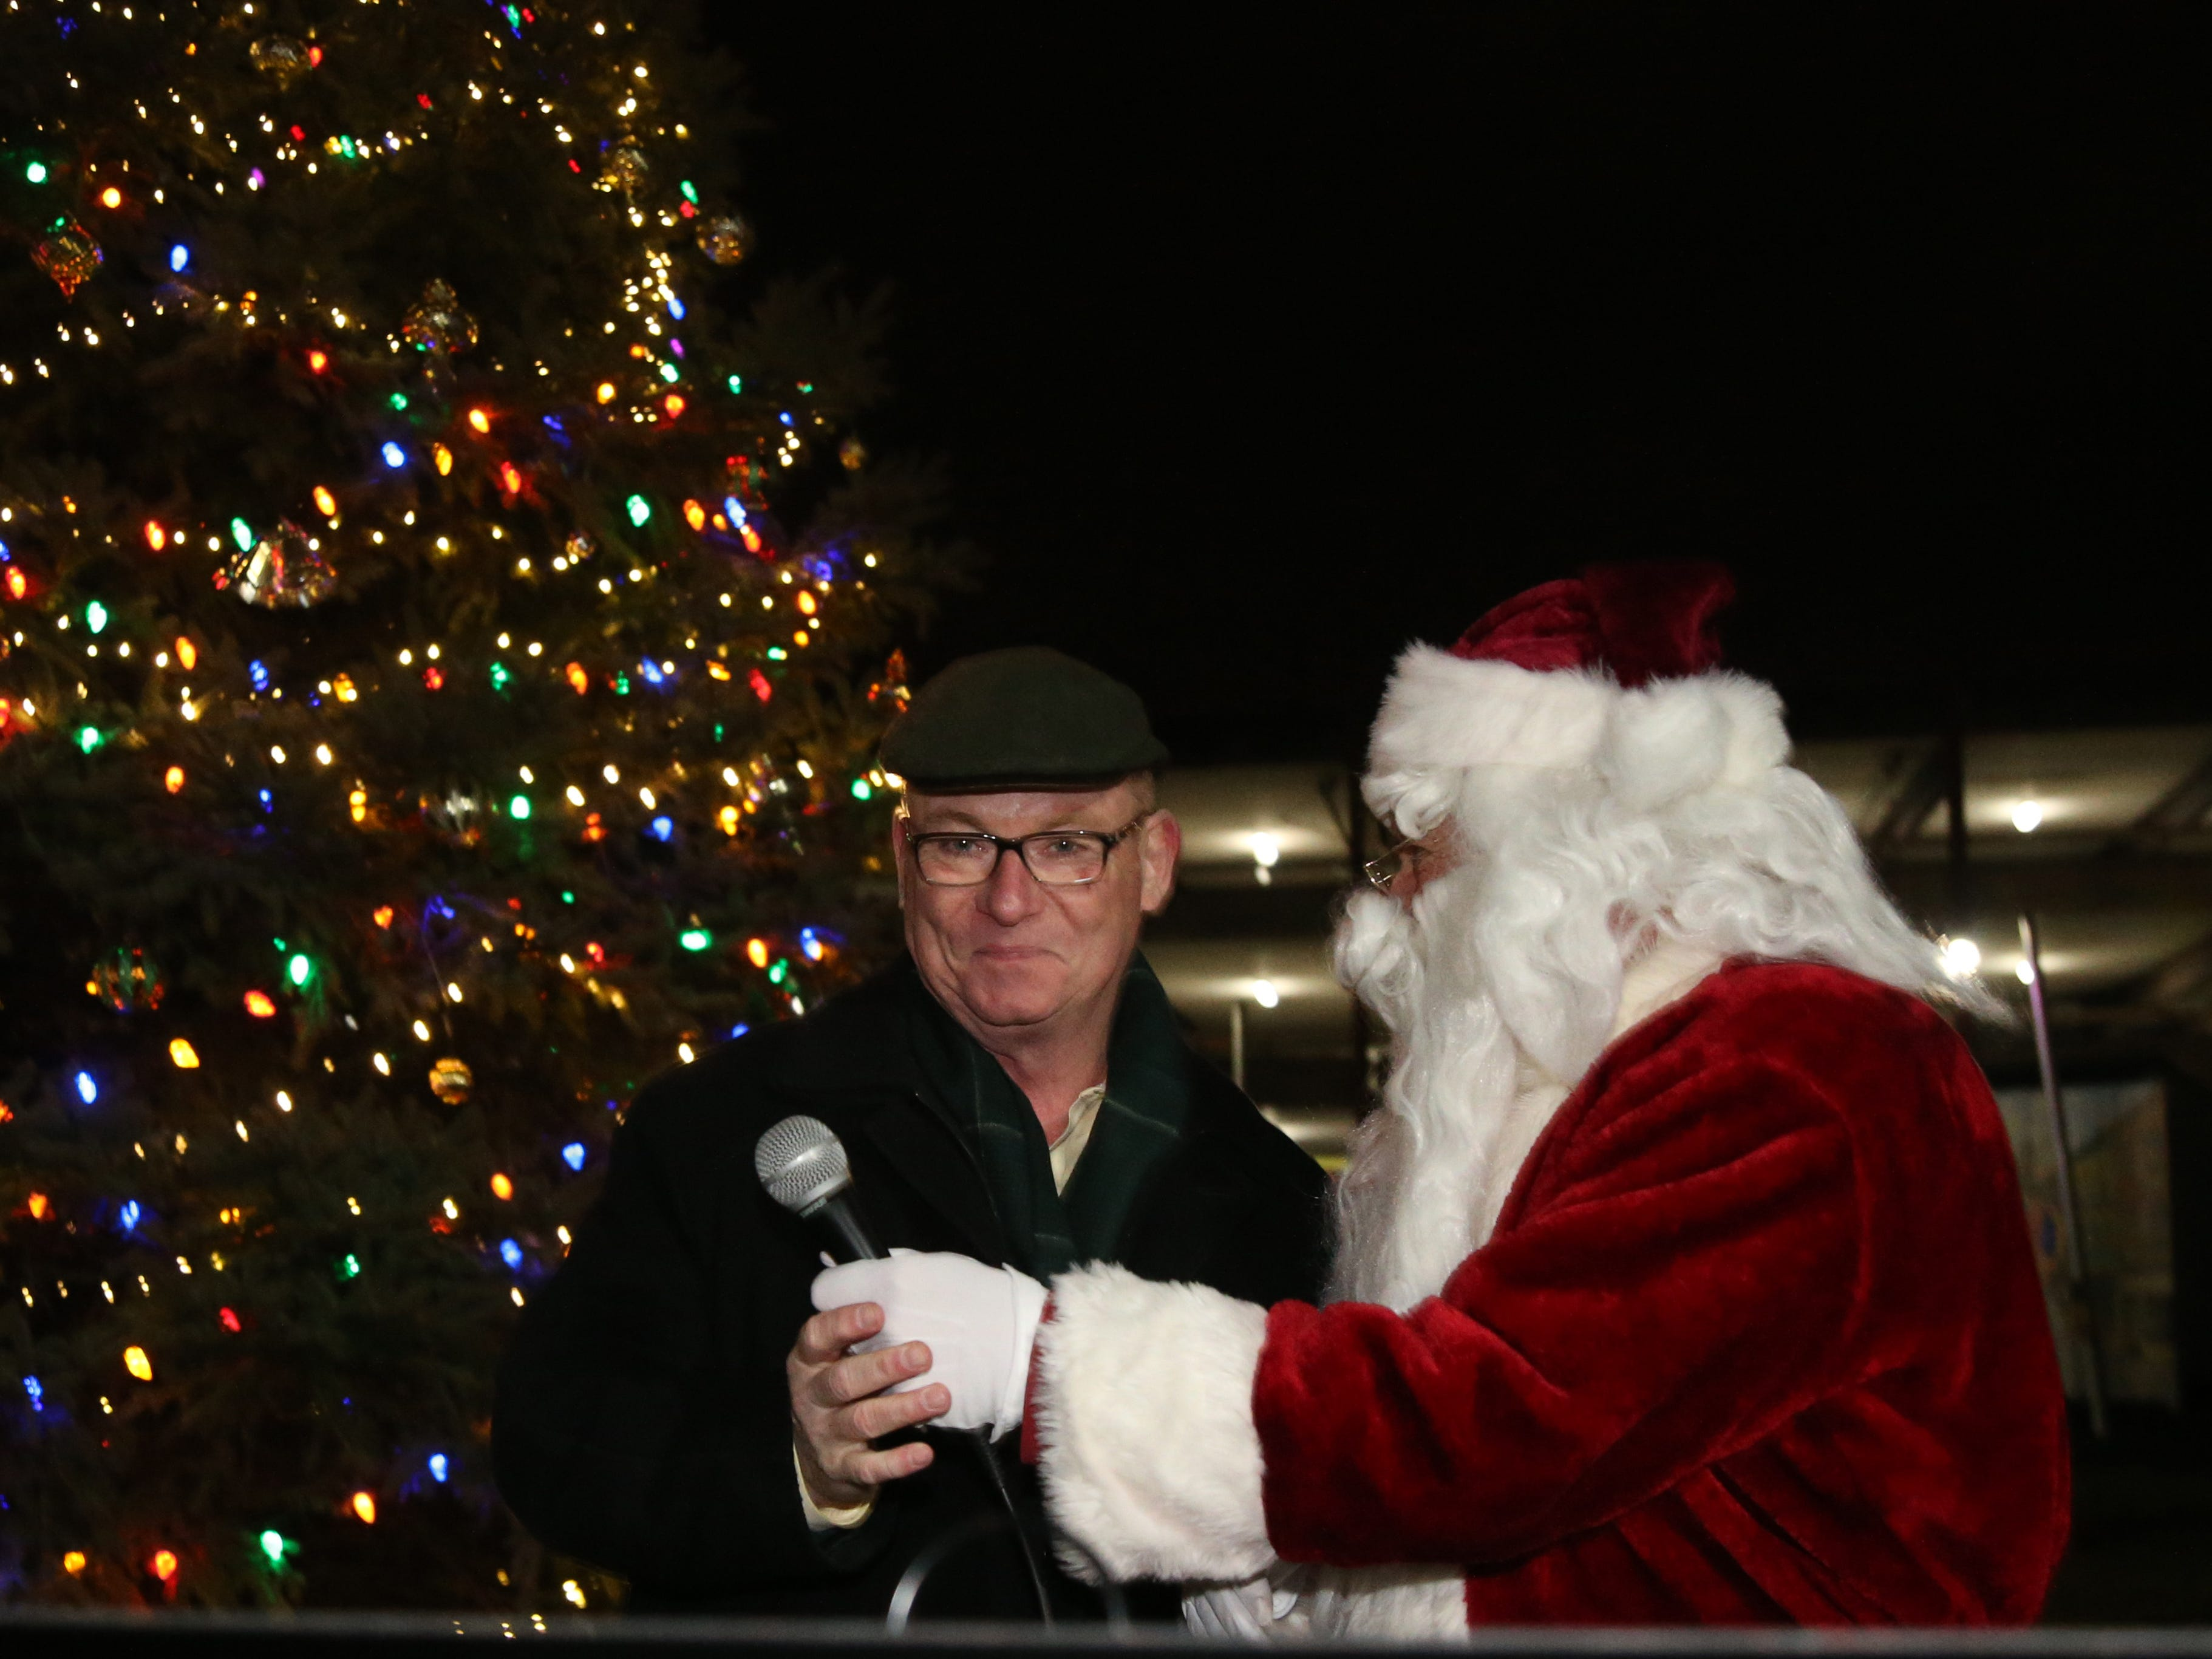 Santa Claus and Mayor Rob Rolison during a tree lighting at the Celebration of Lights Parade in the City of Poughkeepsie on November 30, 2018.